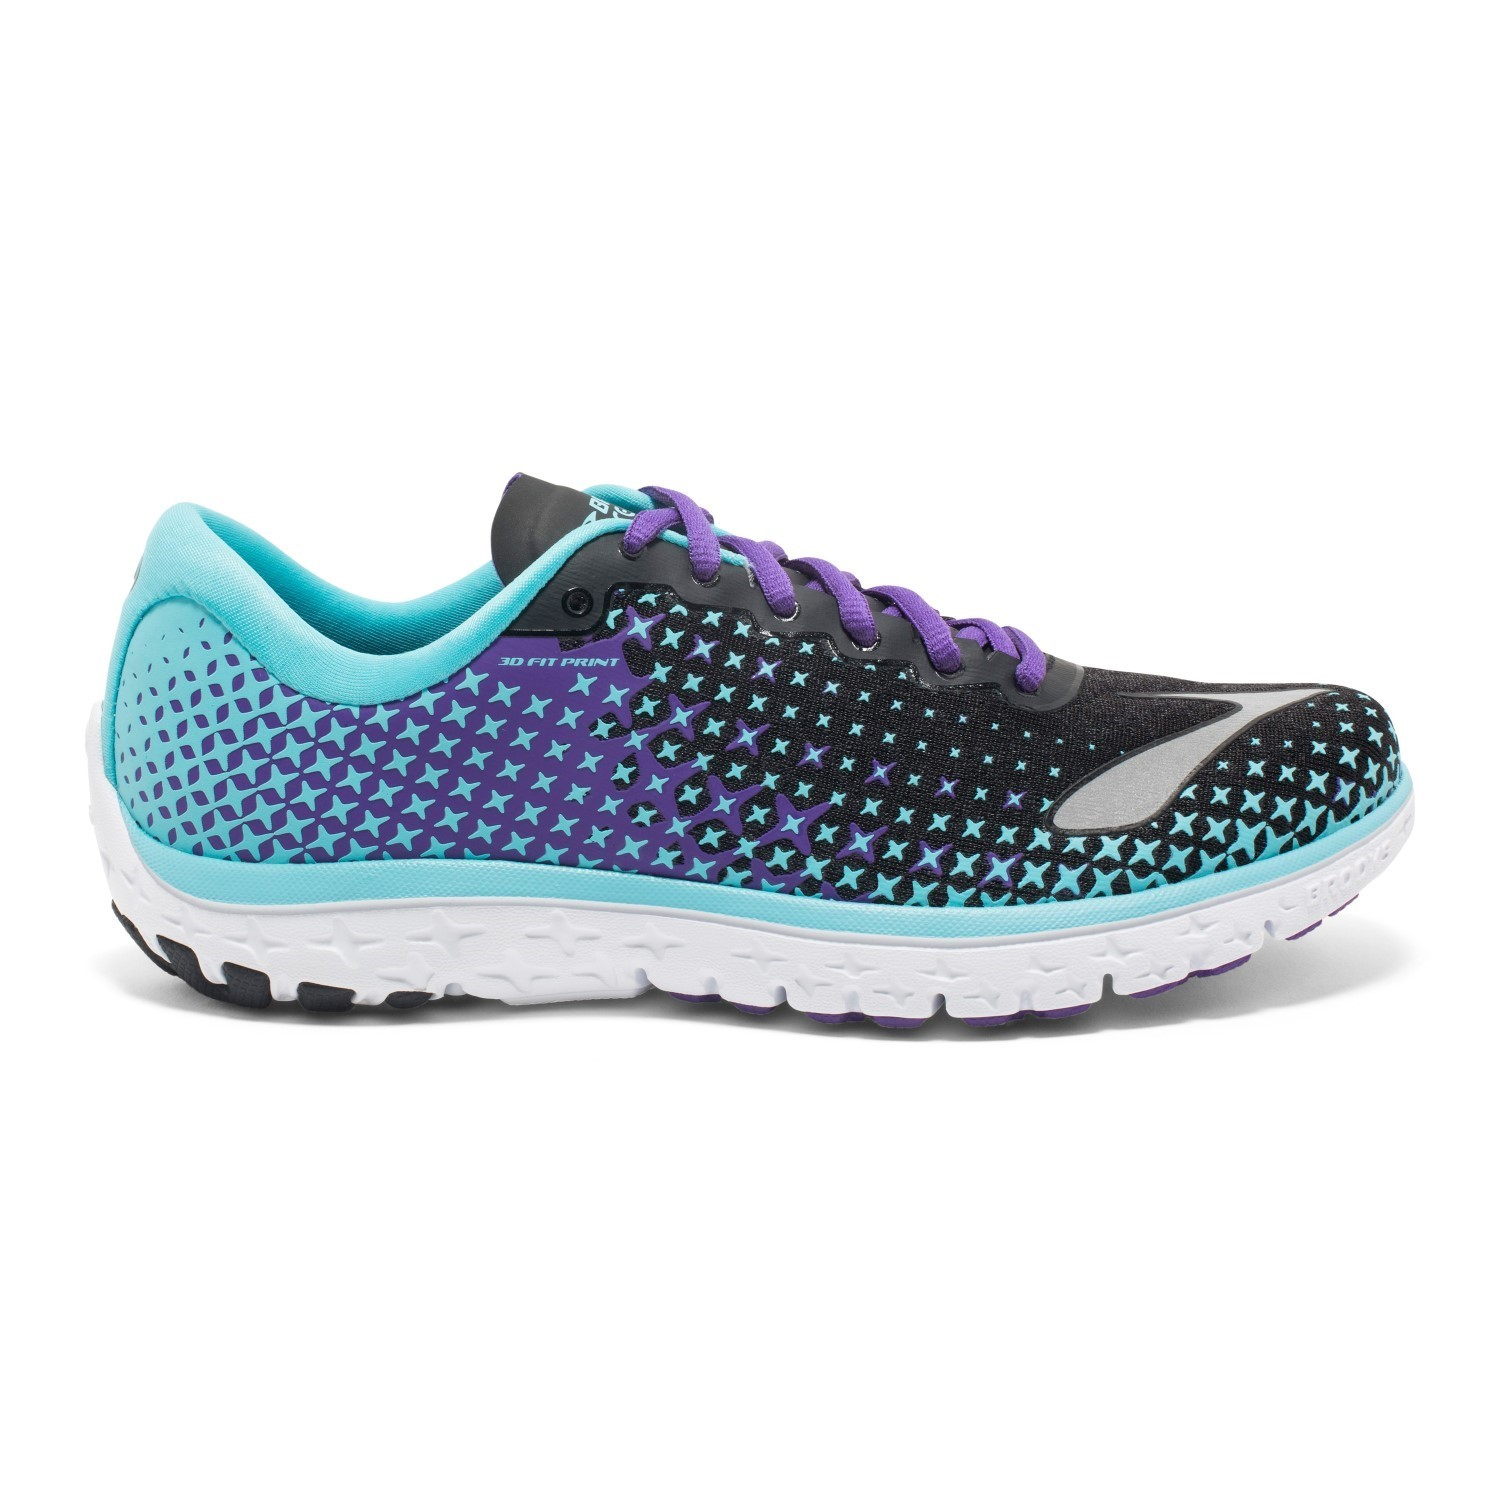 cc8e3b5a17b Brooks PureFlow 5 - Womens Running Shoes - Blue Fish Electric Purple ...